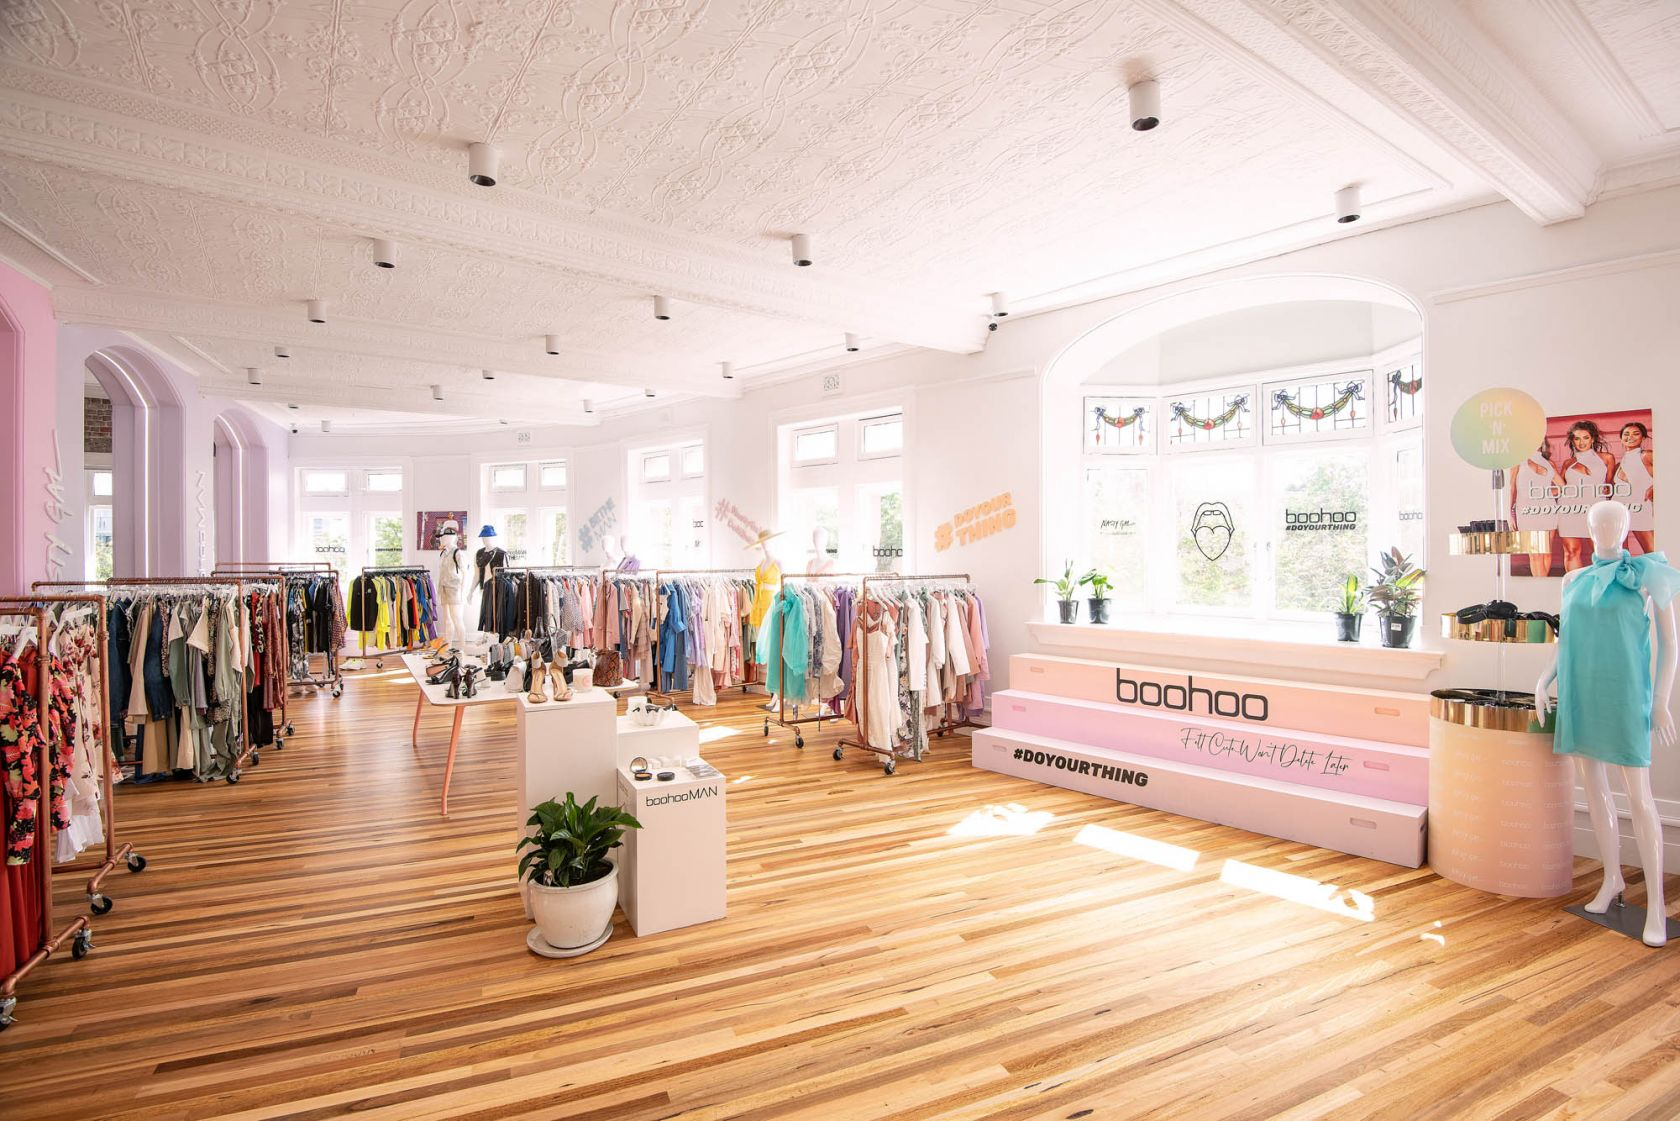 boohoo headquarters sydney darlinghurst schiavello construction heritage fashion garments clothes showroom pressed metal panel ceiilng arches timber floor